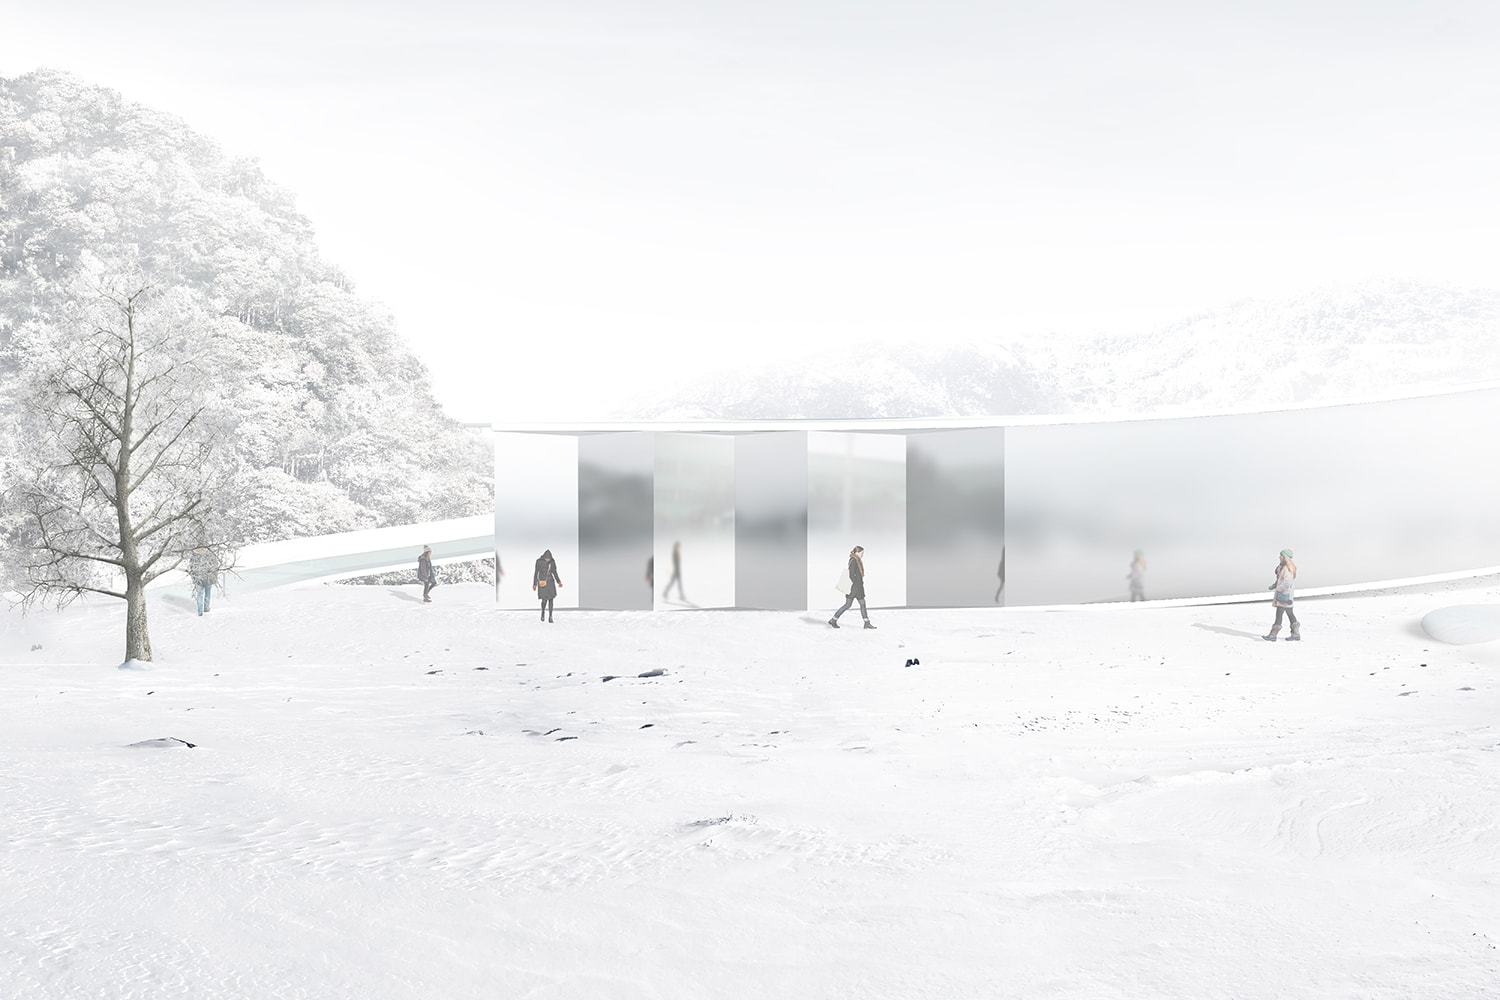 Memorial Entrance Approach View 3D Visualization: Heeseung Choi / A+U Lab